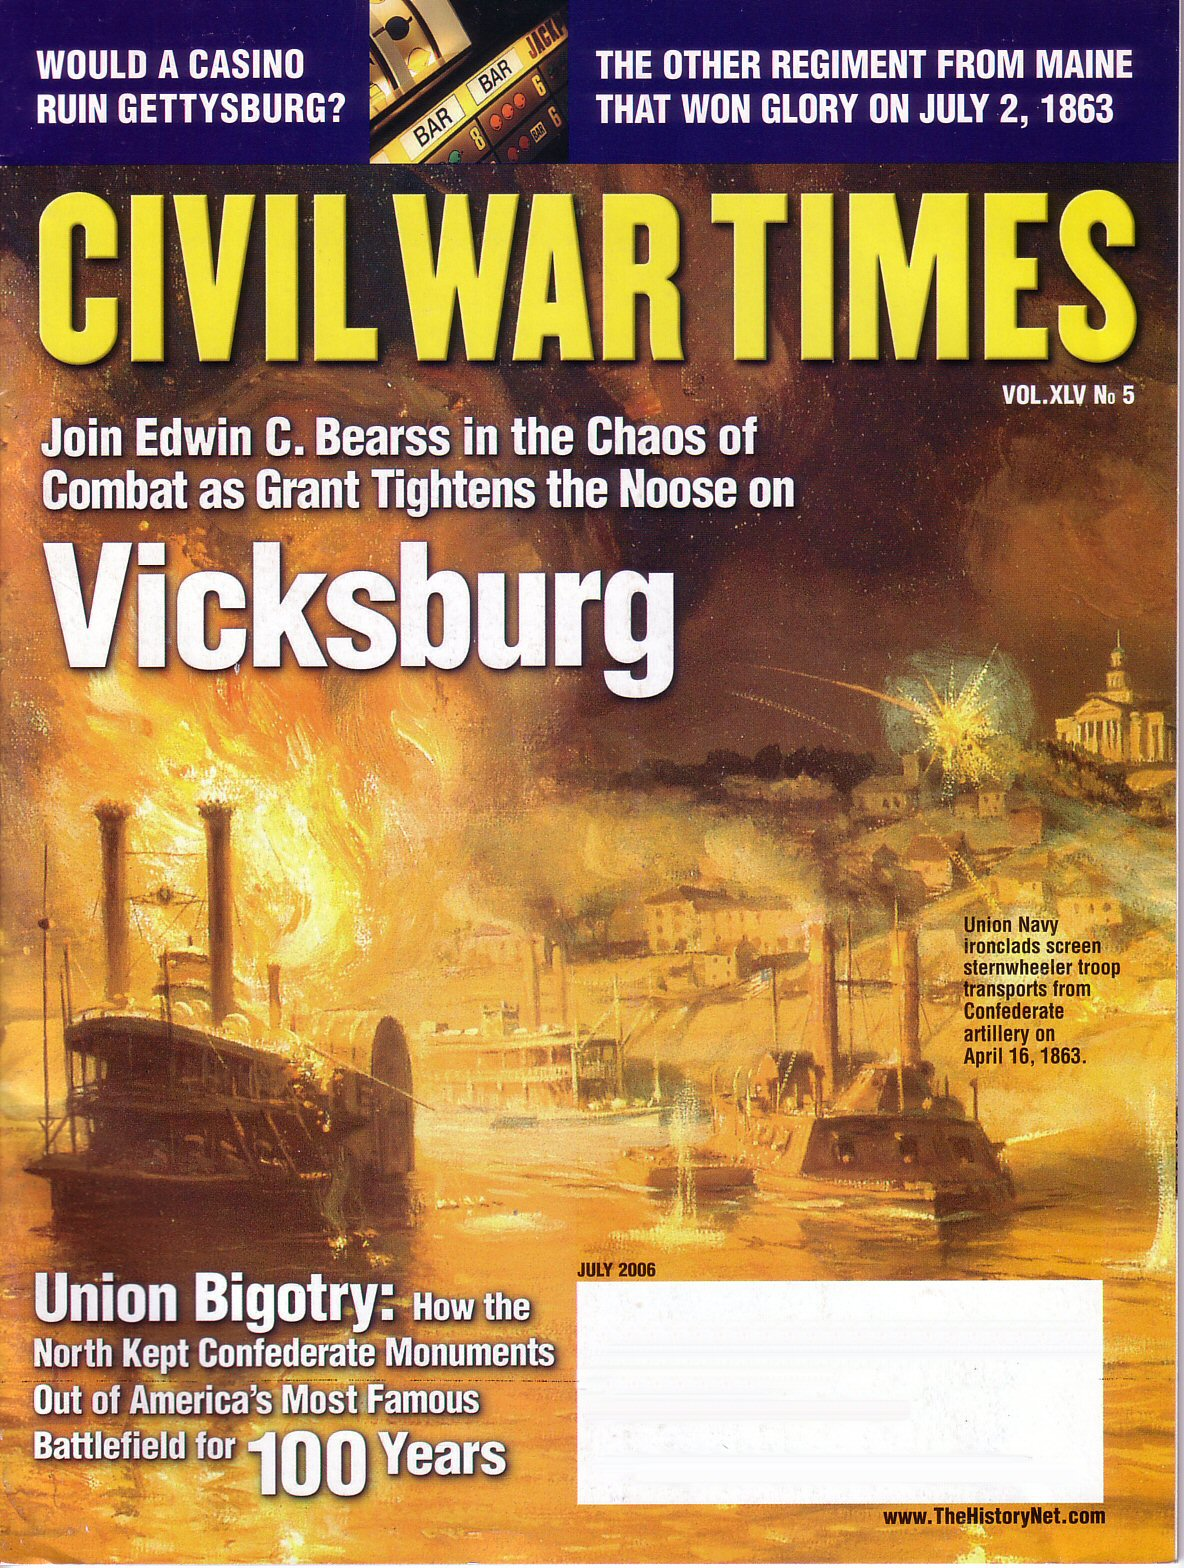 Civil War Times, Volume 45, Number 5 (July 2006)